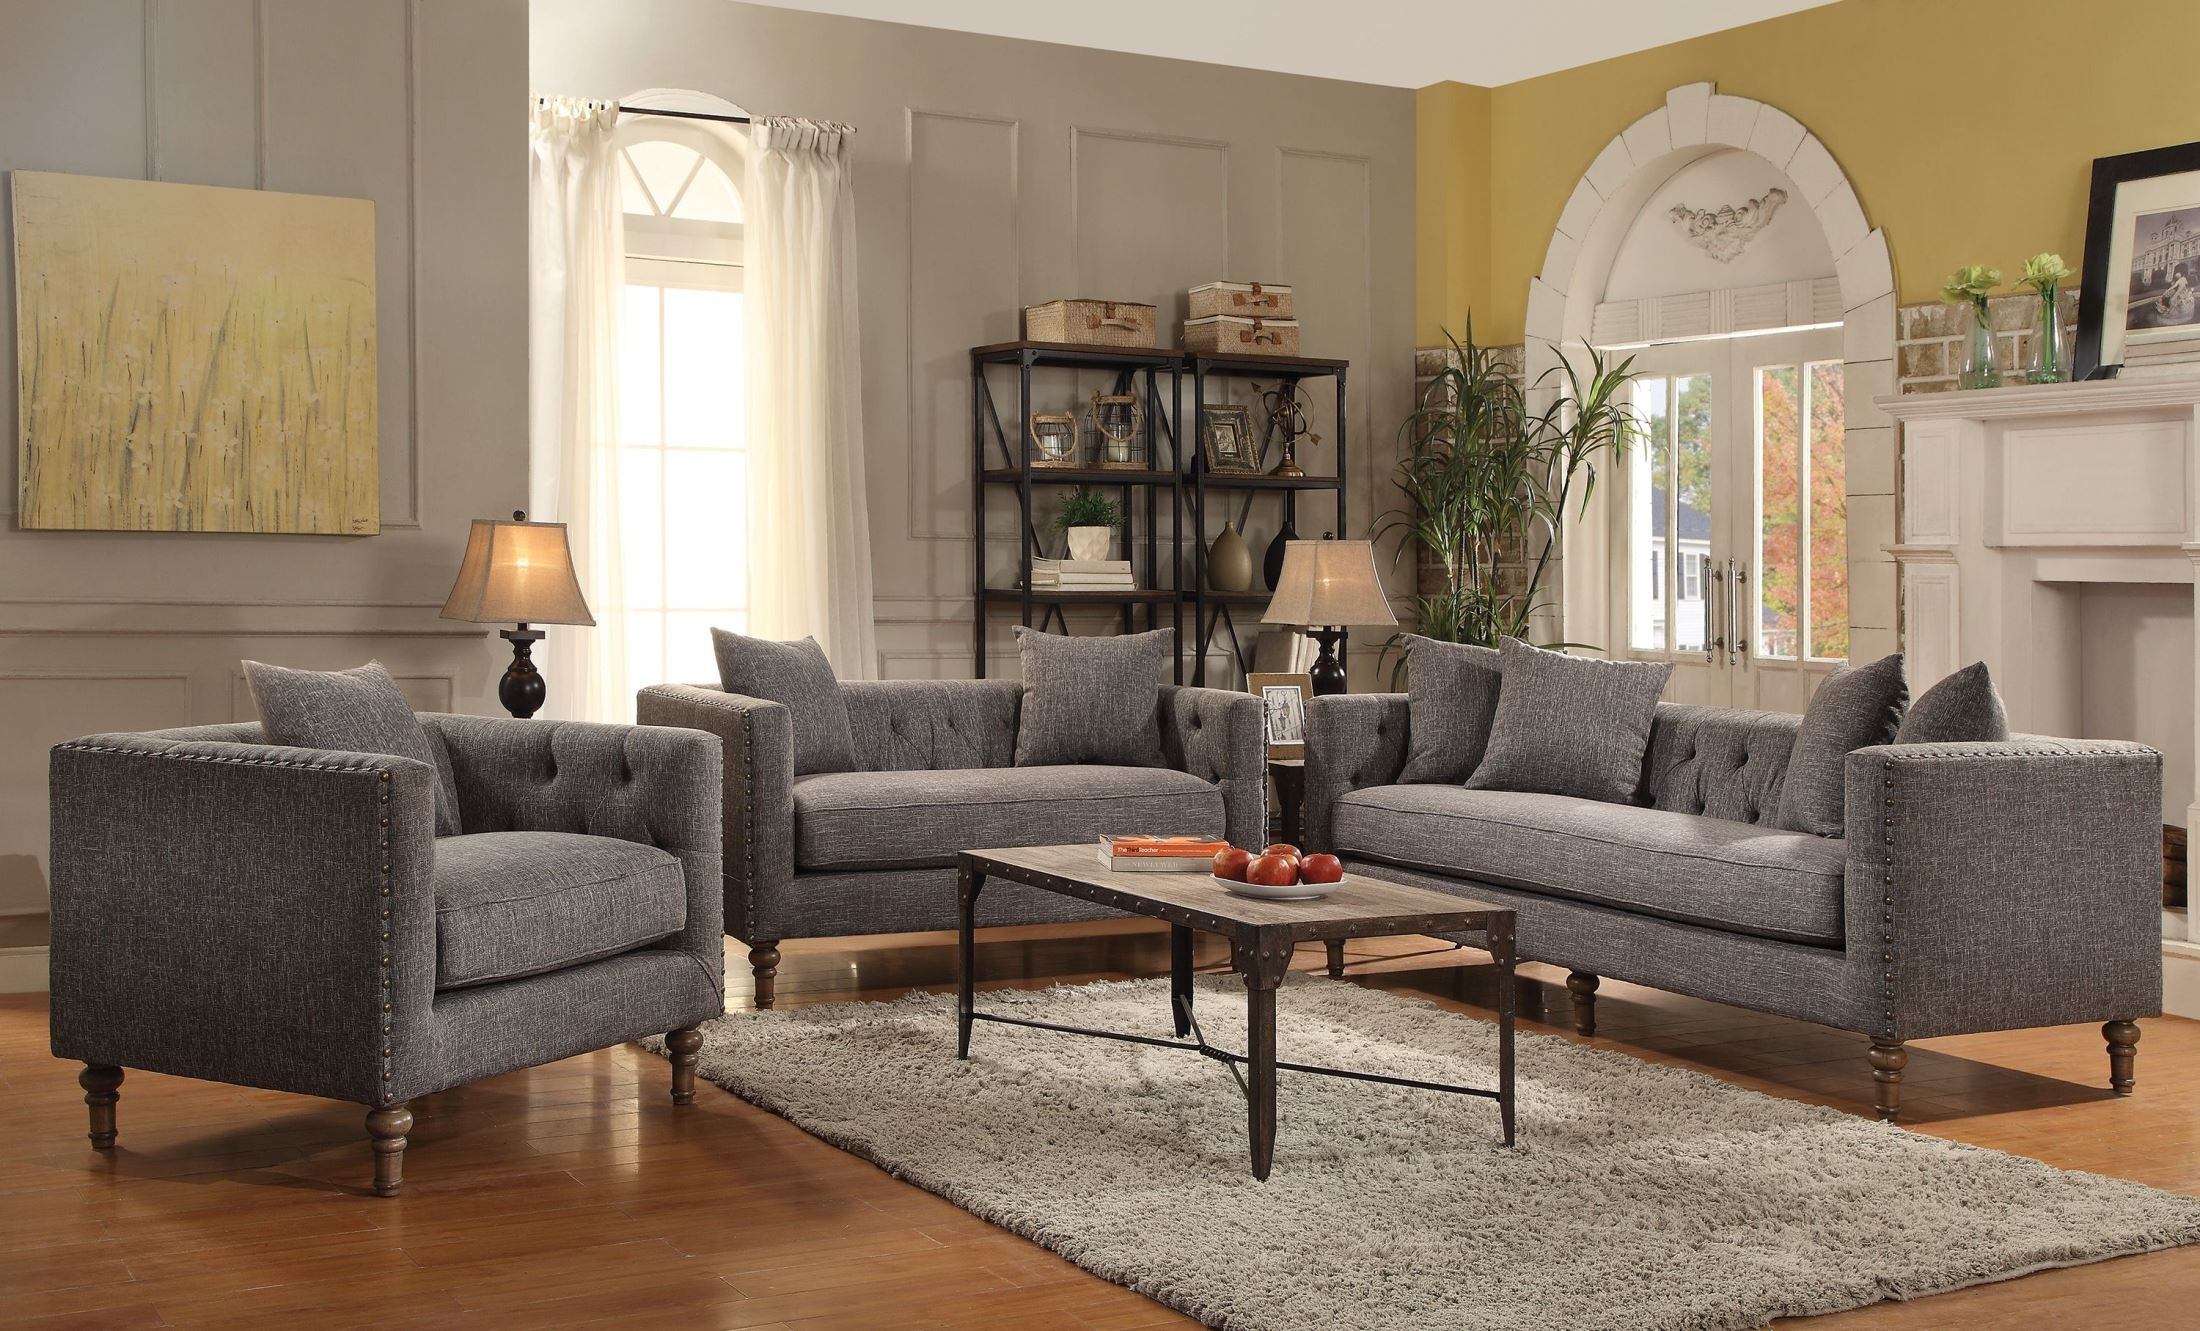 Ellery grey living room set from coaster 505771 for Grey front room furniture